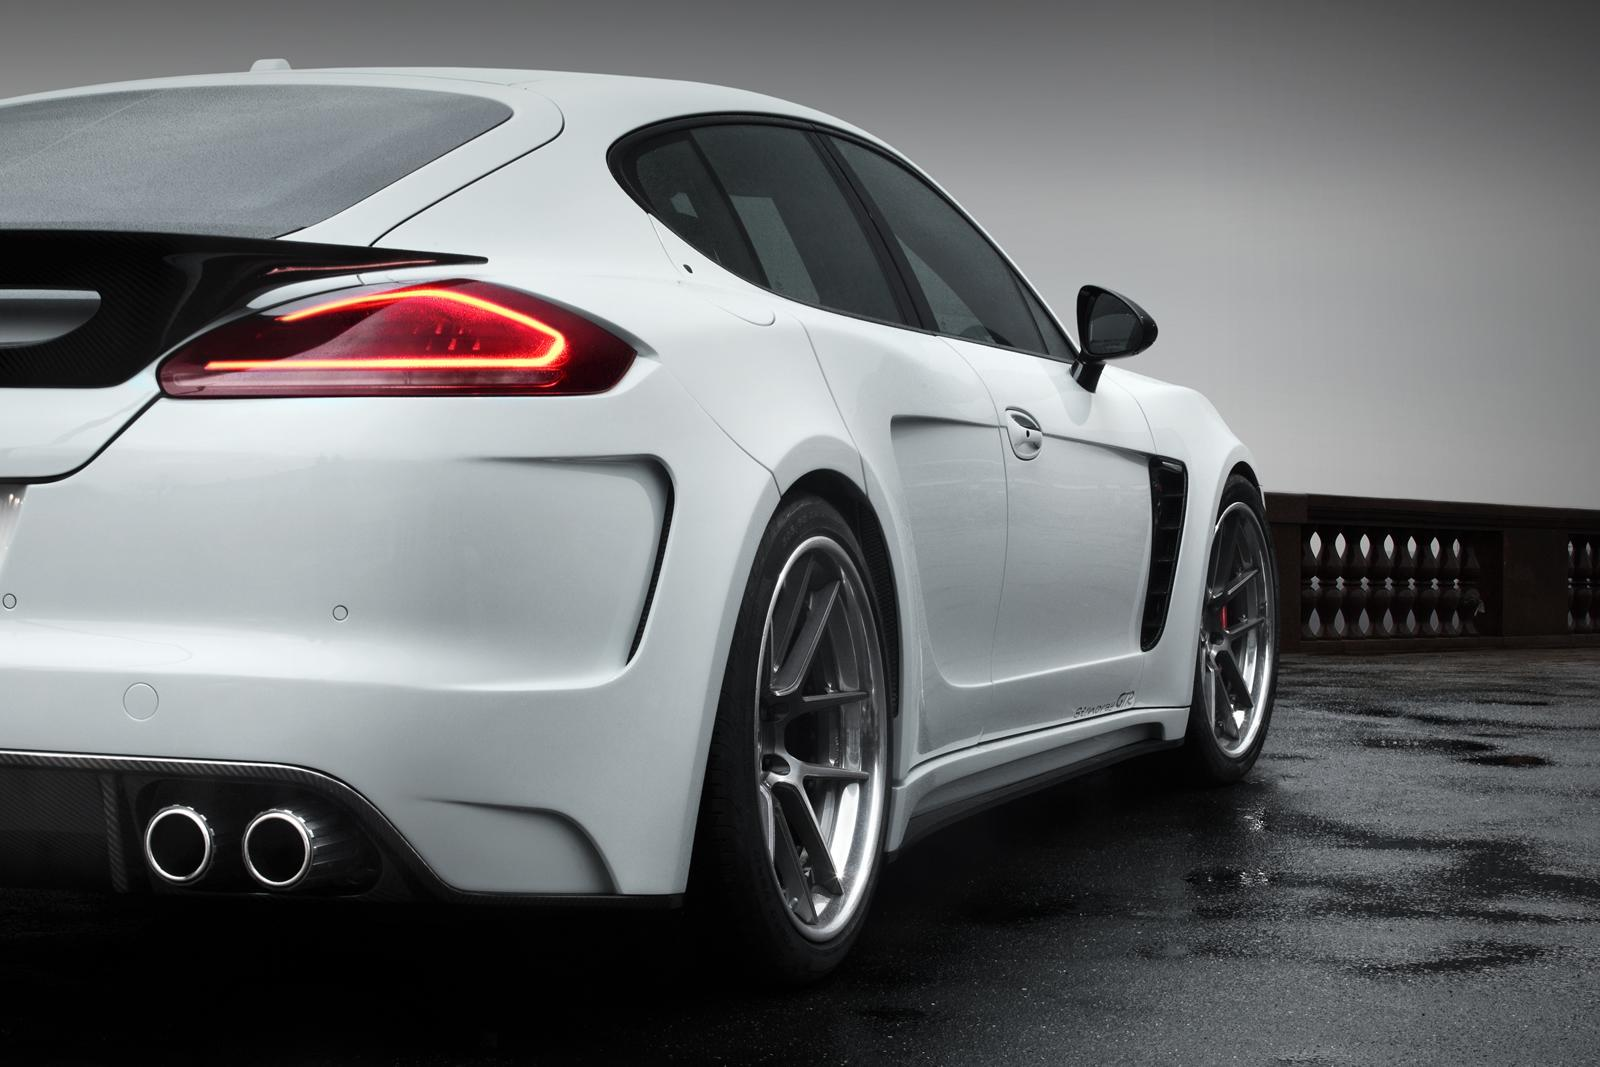 2014 porsche panamera interior car tuning - Inside The Car S Interior Can Be Tailored To Customer S Preferences While Engine Upgrades That Increases Power Up To 522kw Is Also Available